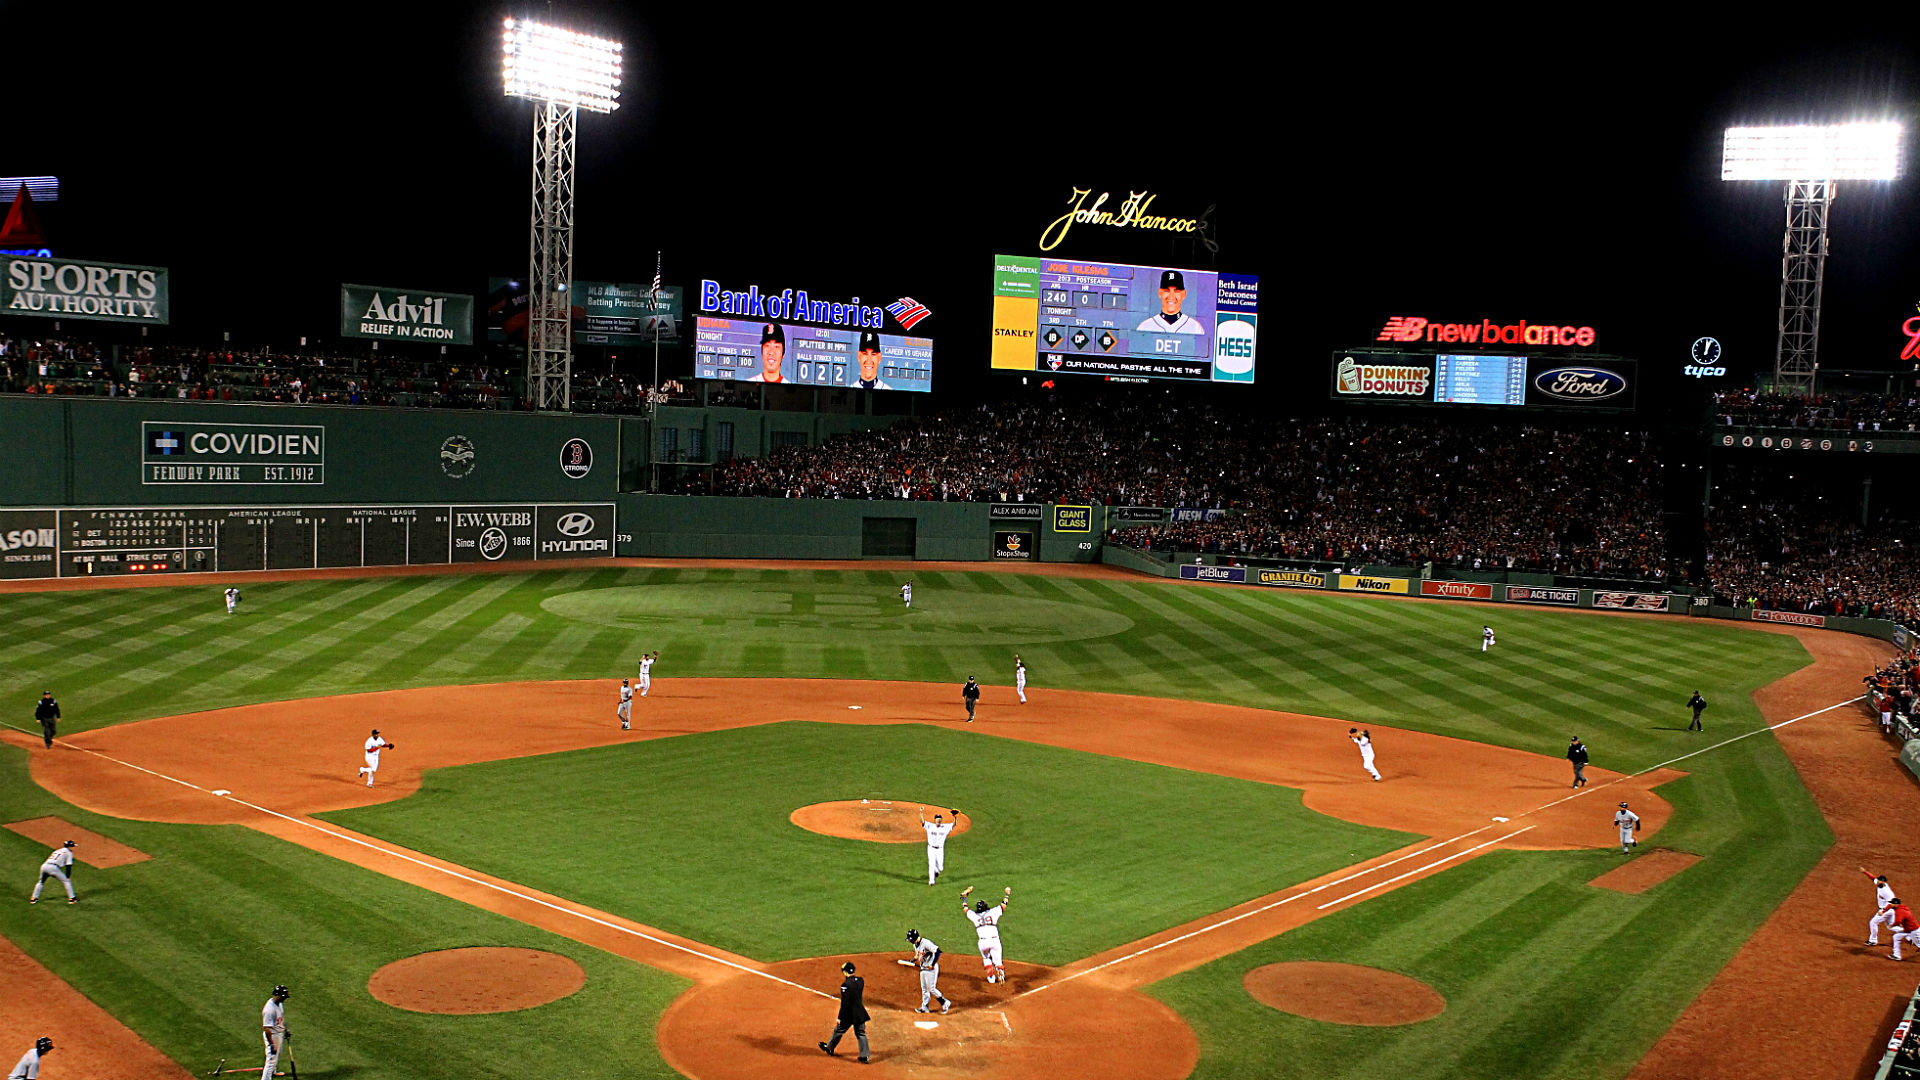 fenway-park-022515-usnews-getty-ftr